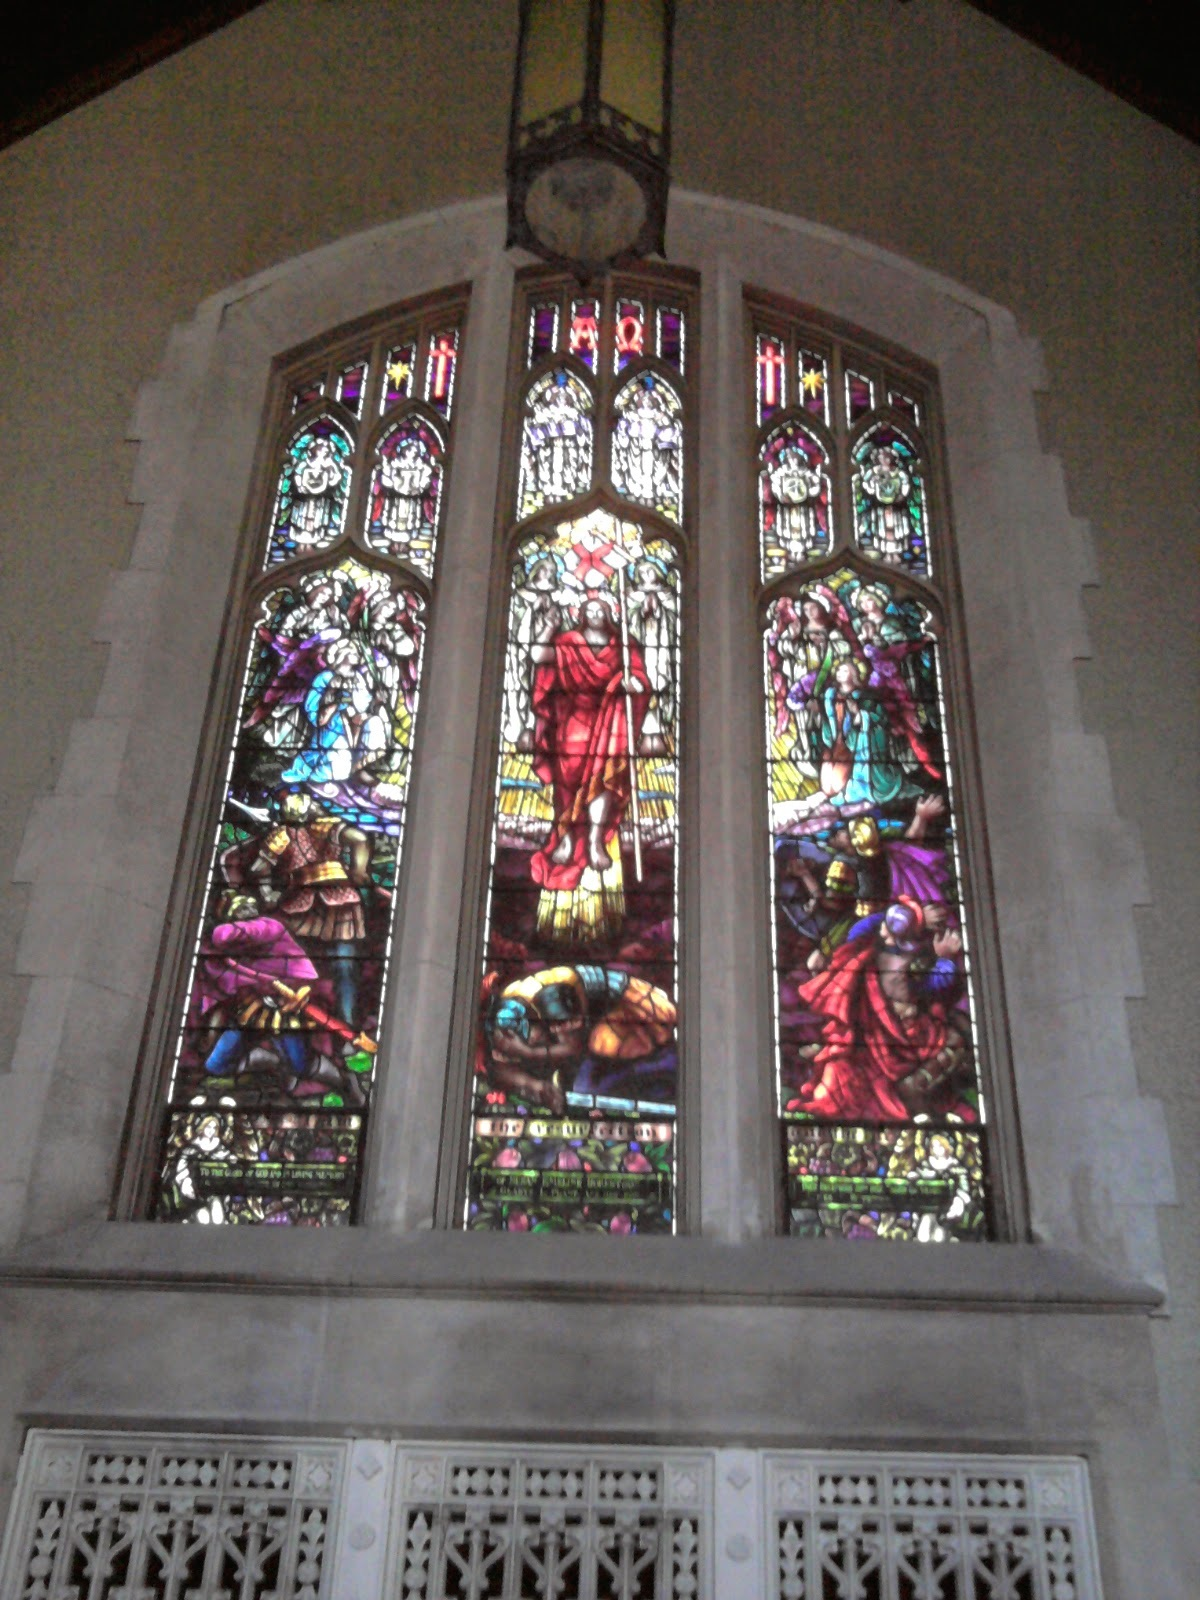 Memorial Stained Glass– 'The Resurrection' by Robert McCausland Limited was dedicated at St Matthew's Anglican Church in the Glebe, Ottawa on 17 Jan 1921 to the members of the church who served during the Great War. The window was transferred to the current site, 217 First Avenue in 1938.